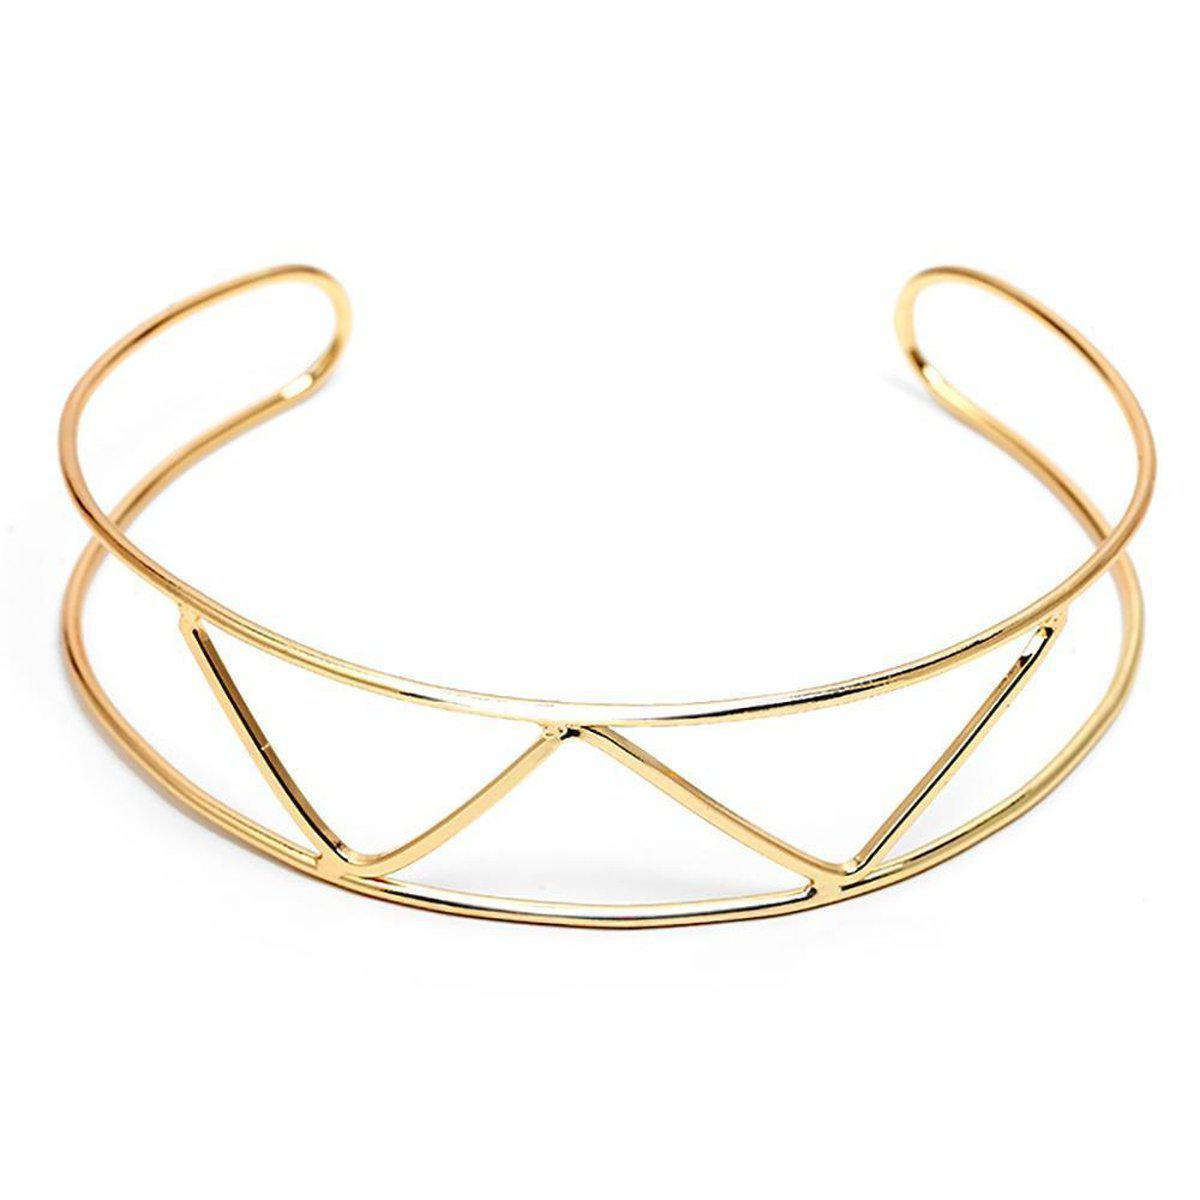 Golden Gate Metallic Choker-Blinglane